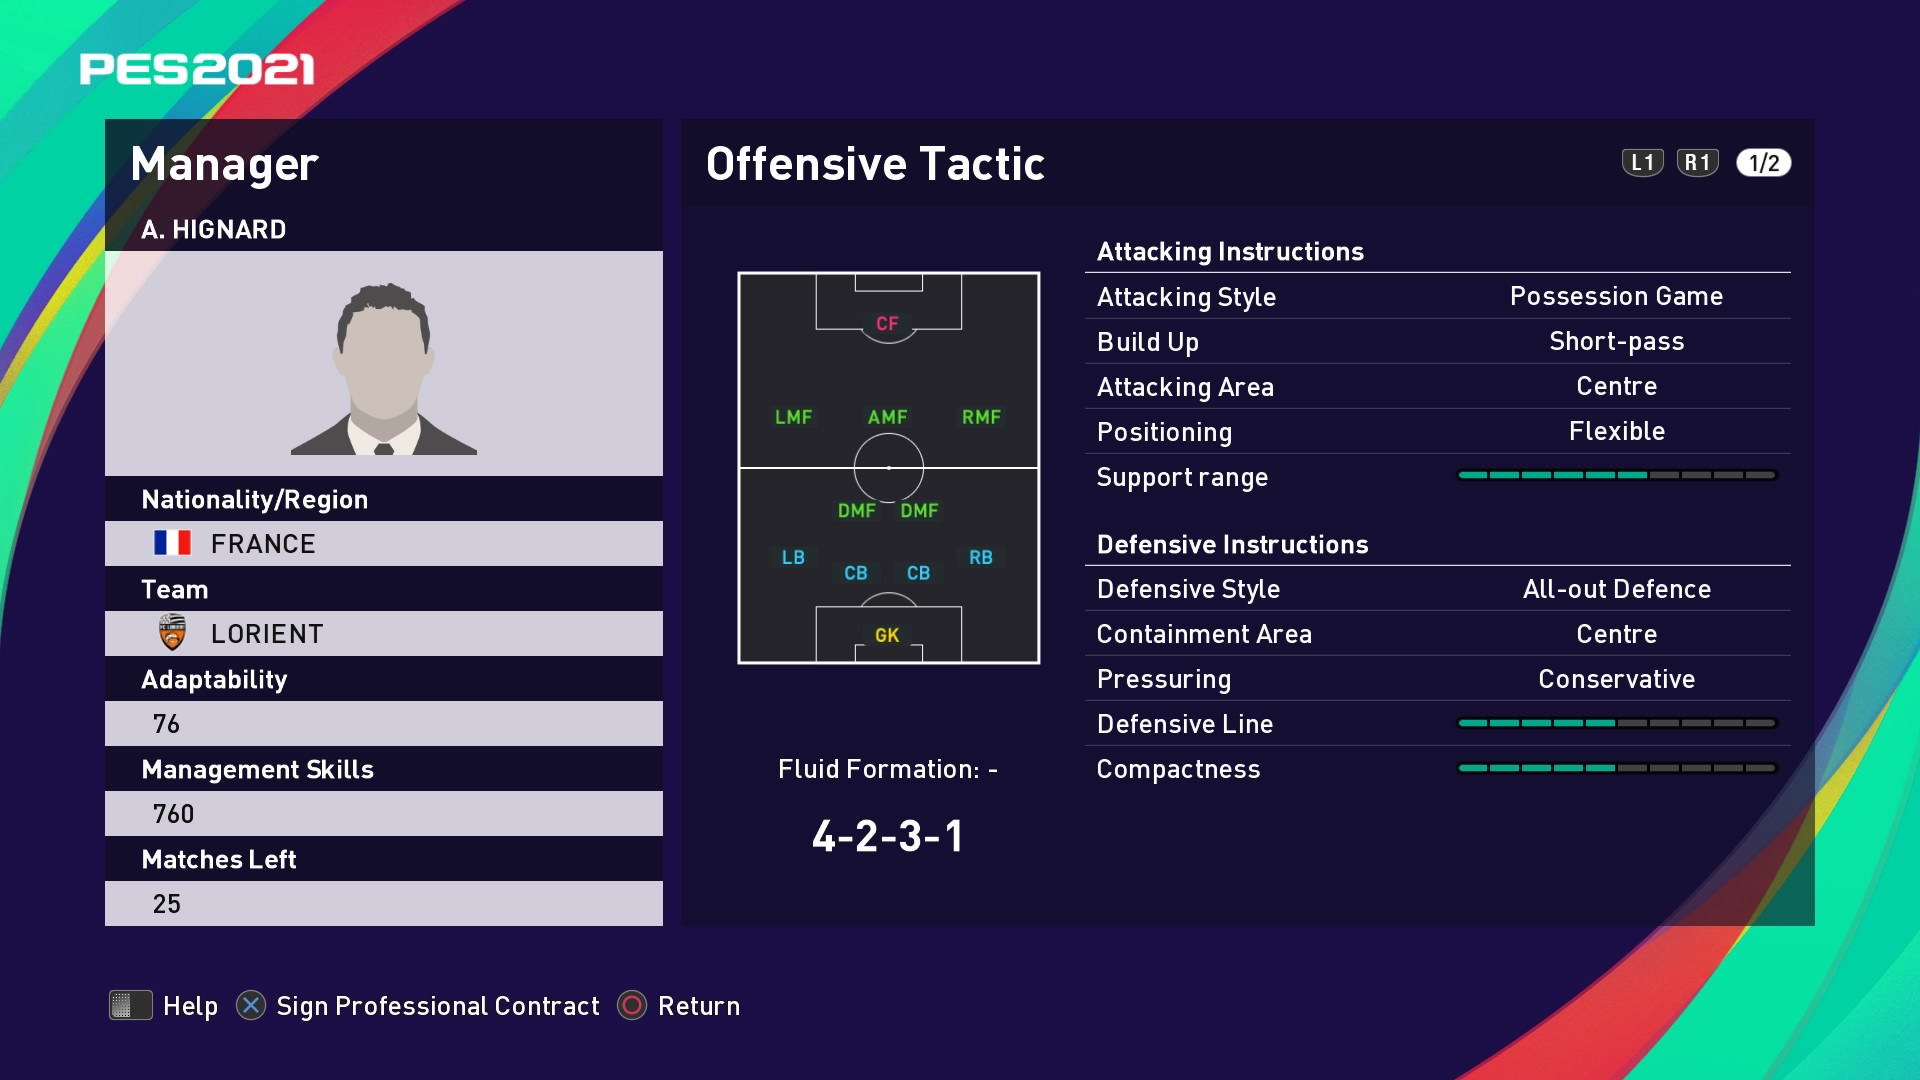 A. Hignard (Christophe Pélissier) Offensive Tactic in PES 2021 myClub